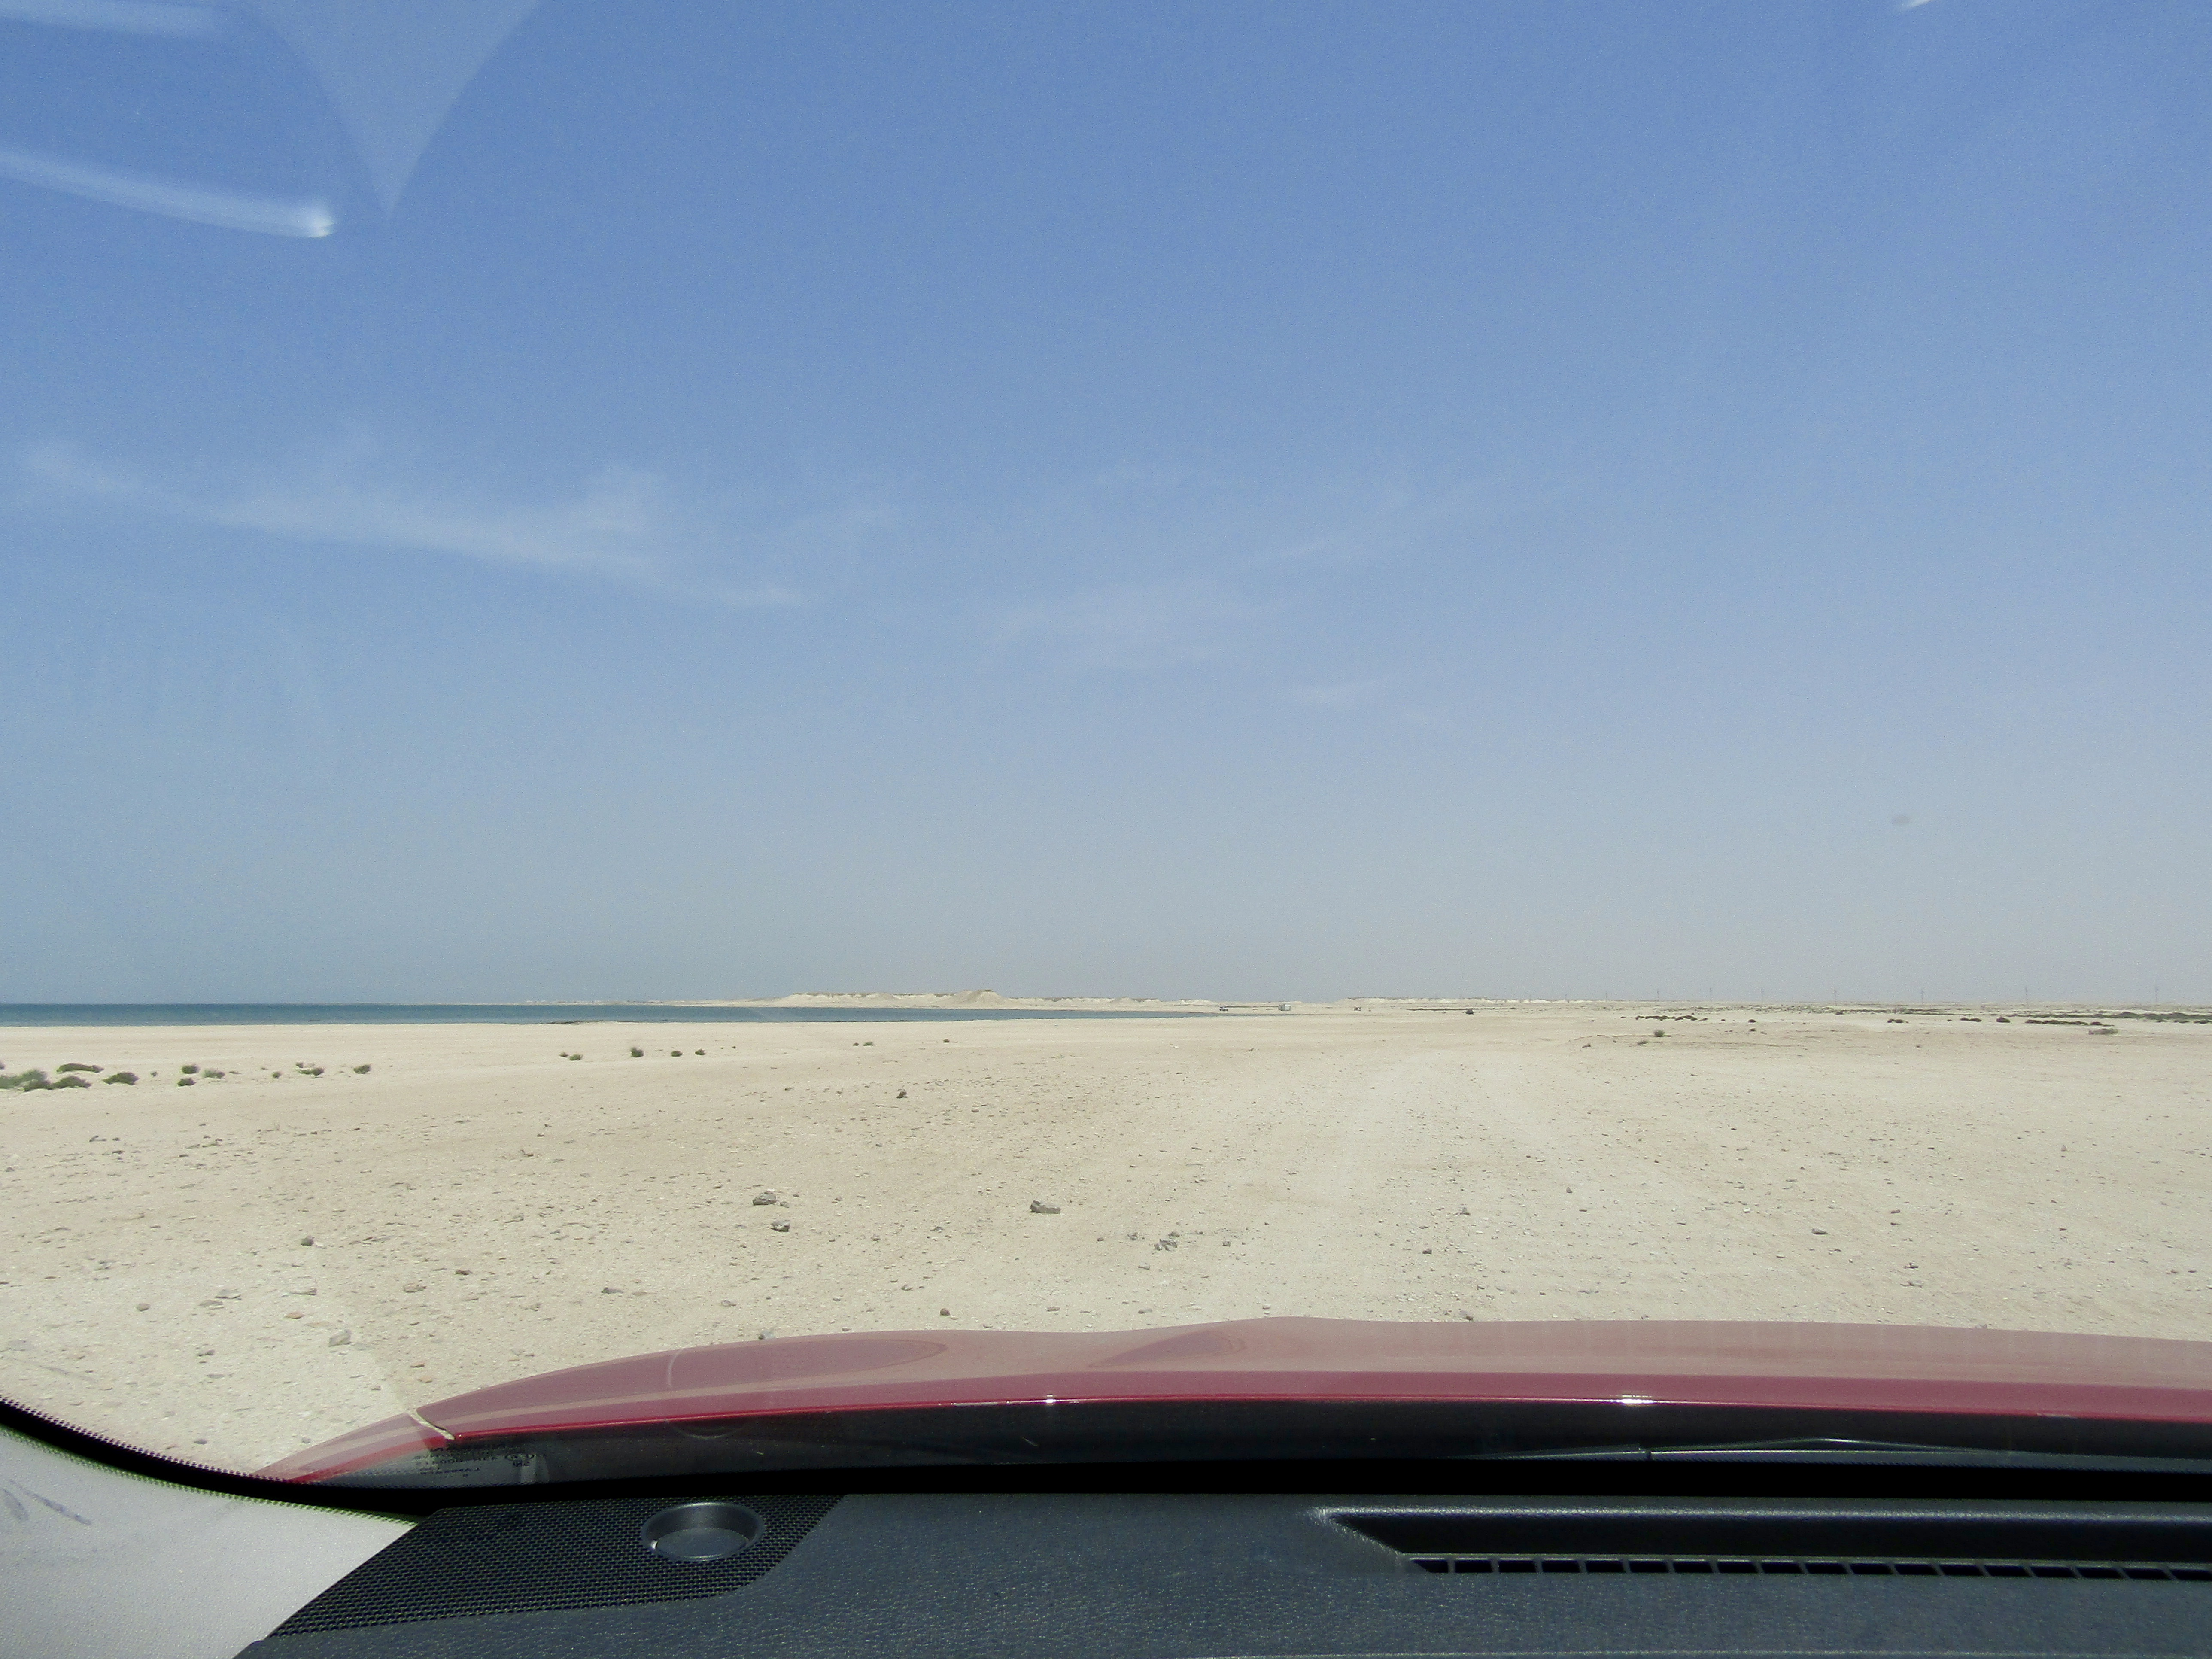 April, 2017 - Zekreet, Qatar - Driving to find Zekreet Beach